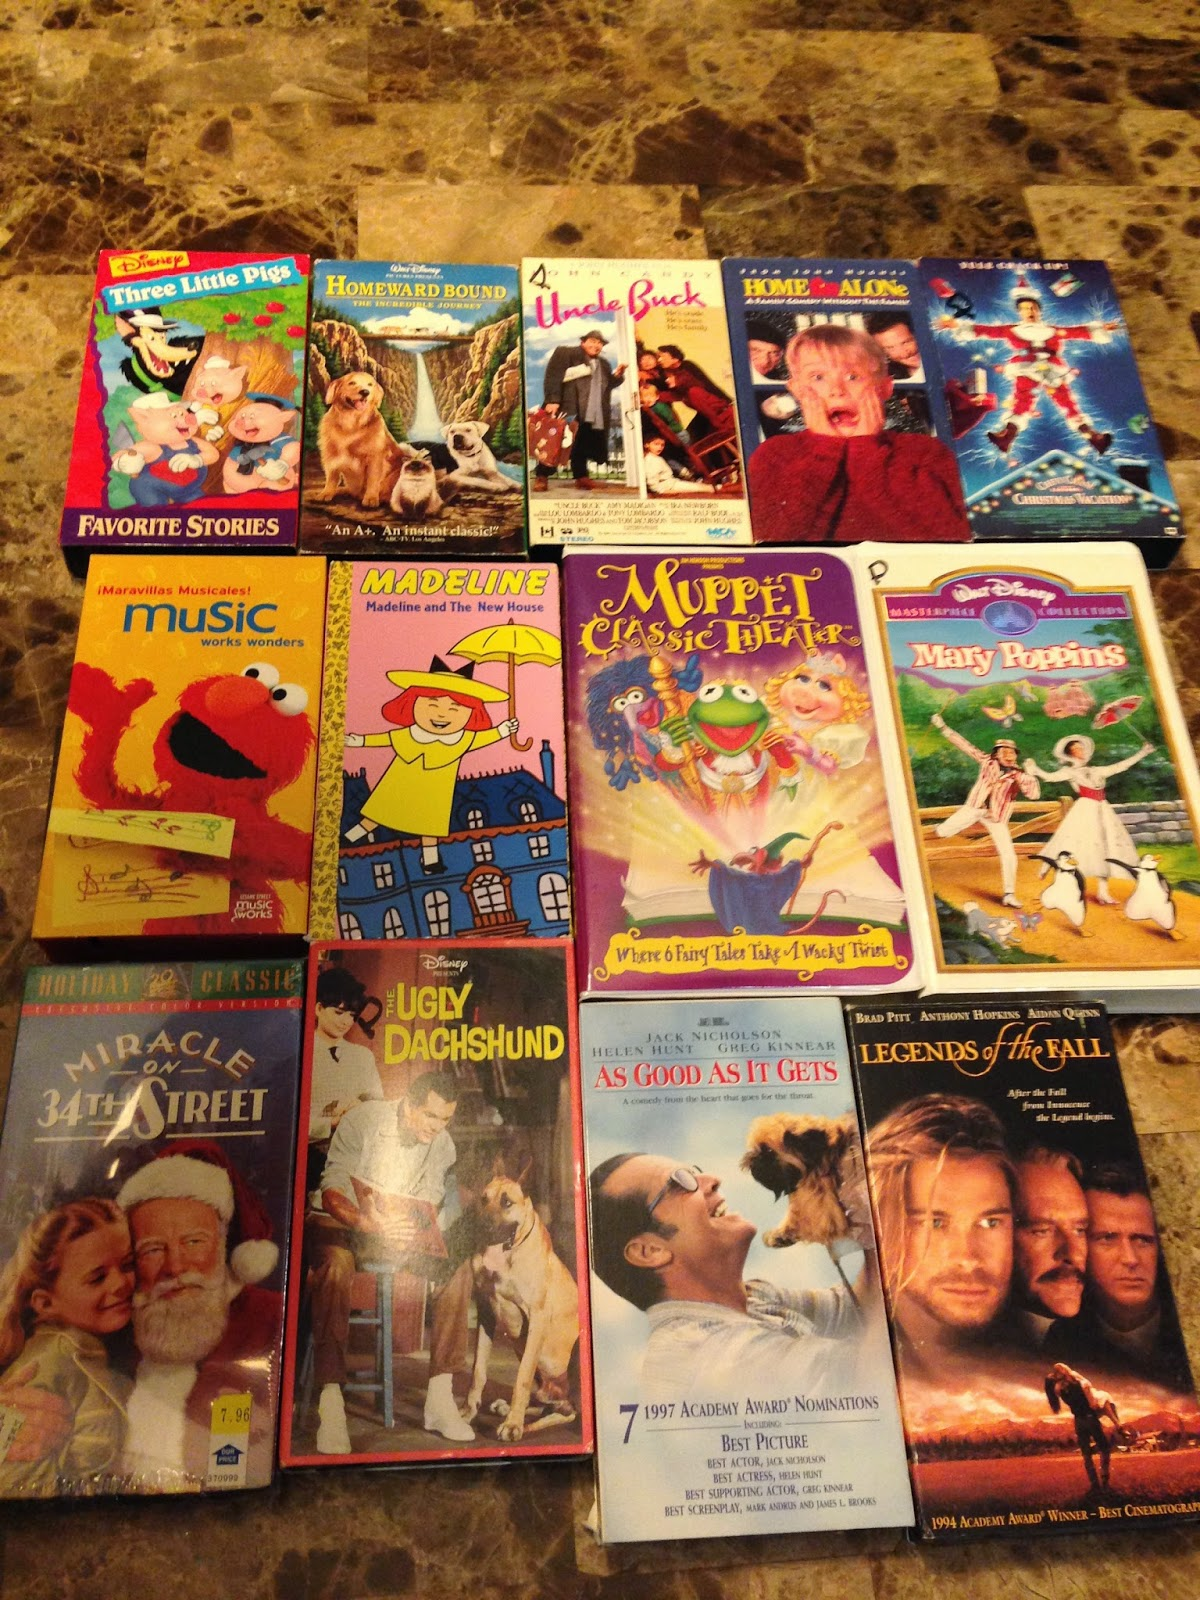 Sell Vhs Tapes >> Raising Funds for Brent's Heart: Children's Books, VHS Tapes, Board Games and toys